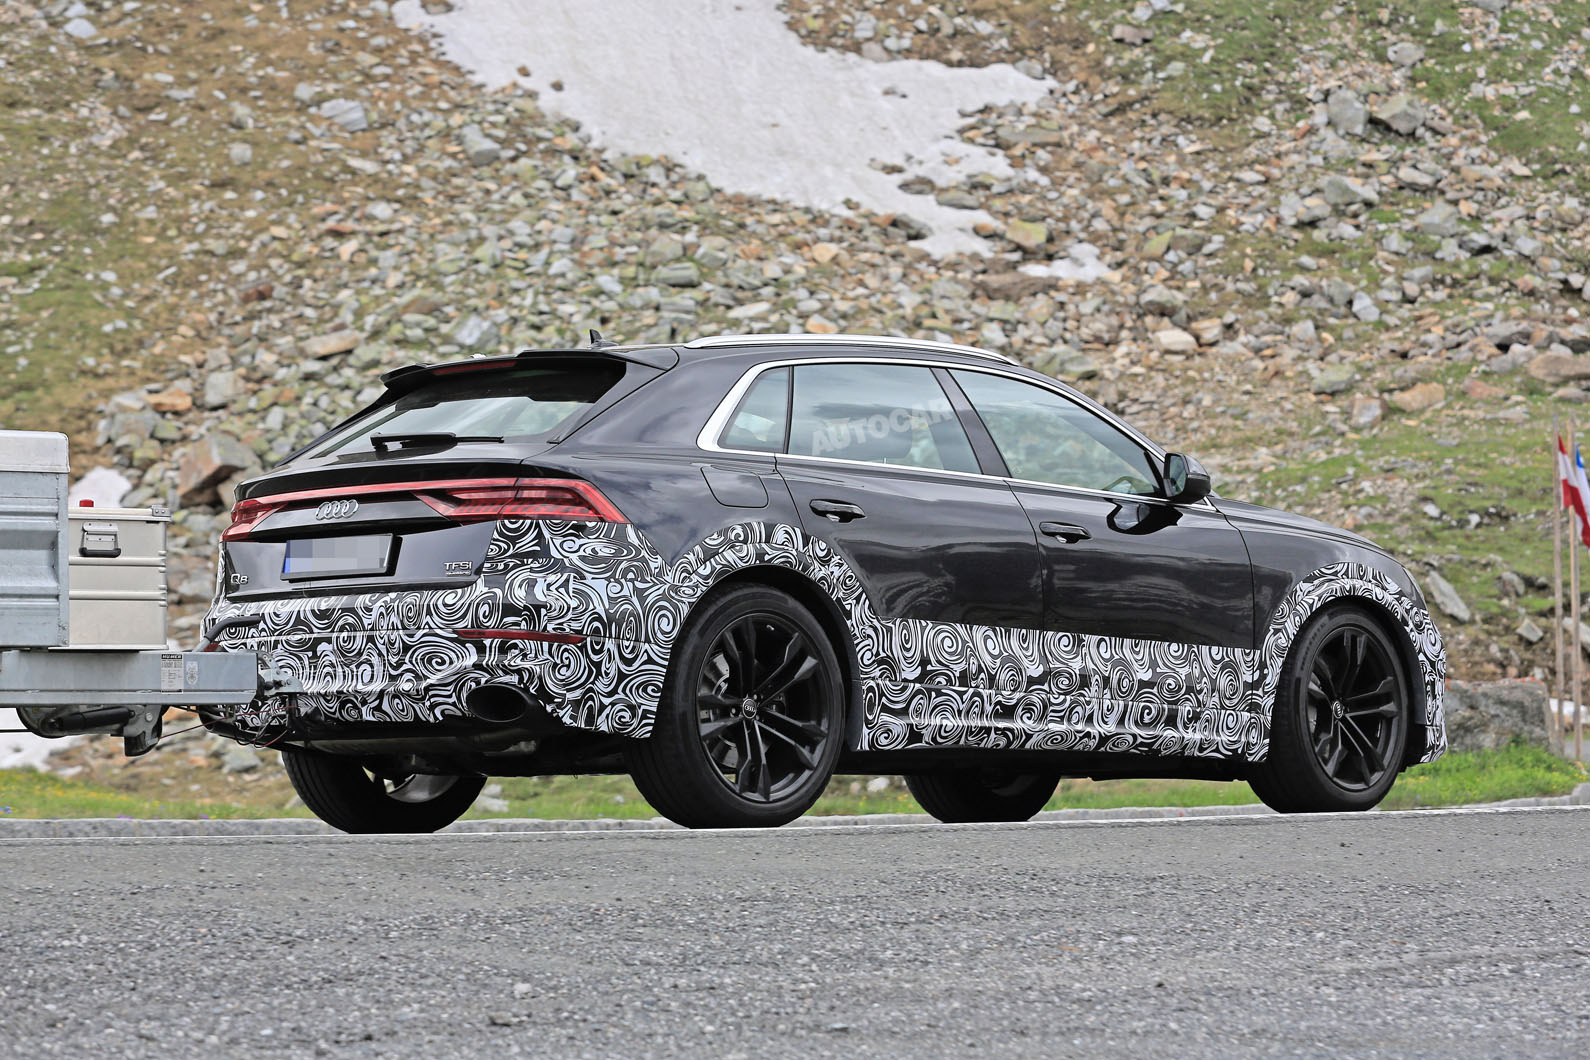 2019 Audi Rs Q8 Due With 670bhp Hybrid V8 Powertrain Awin